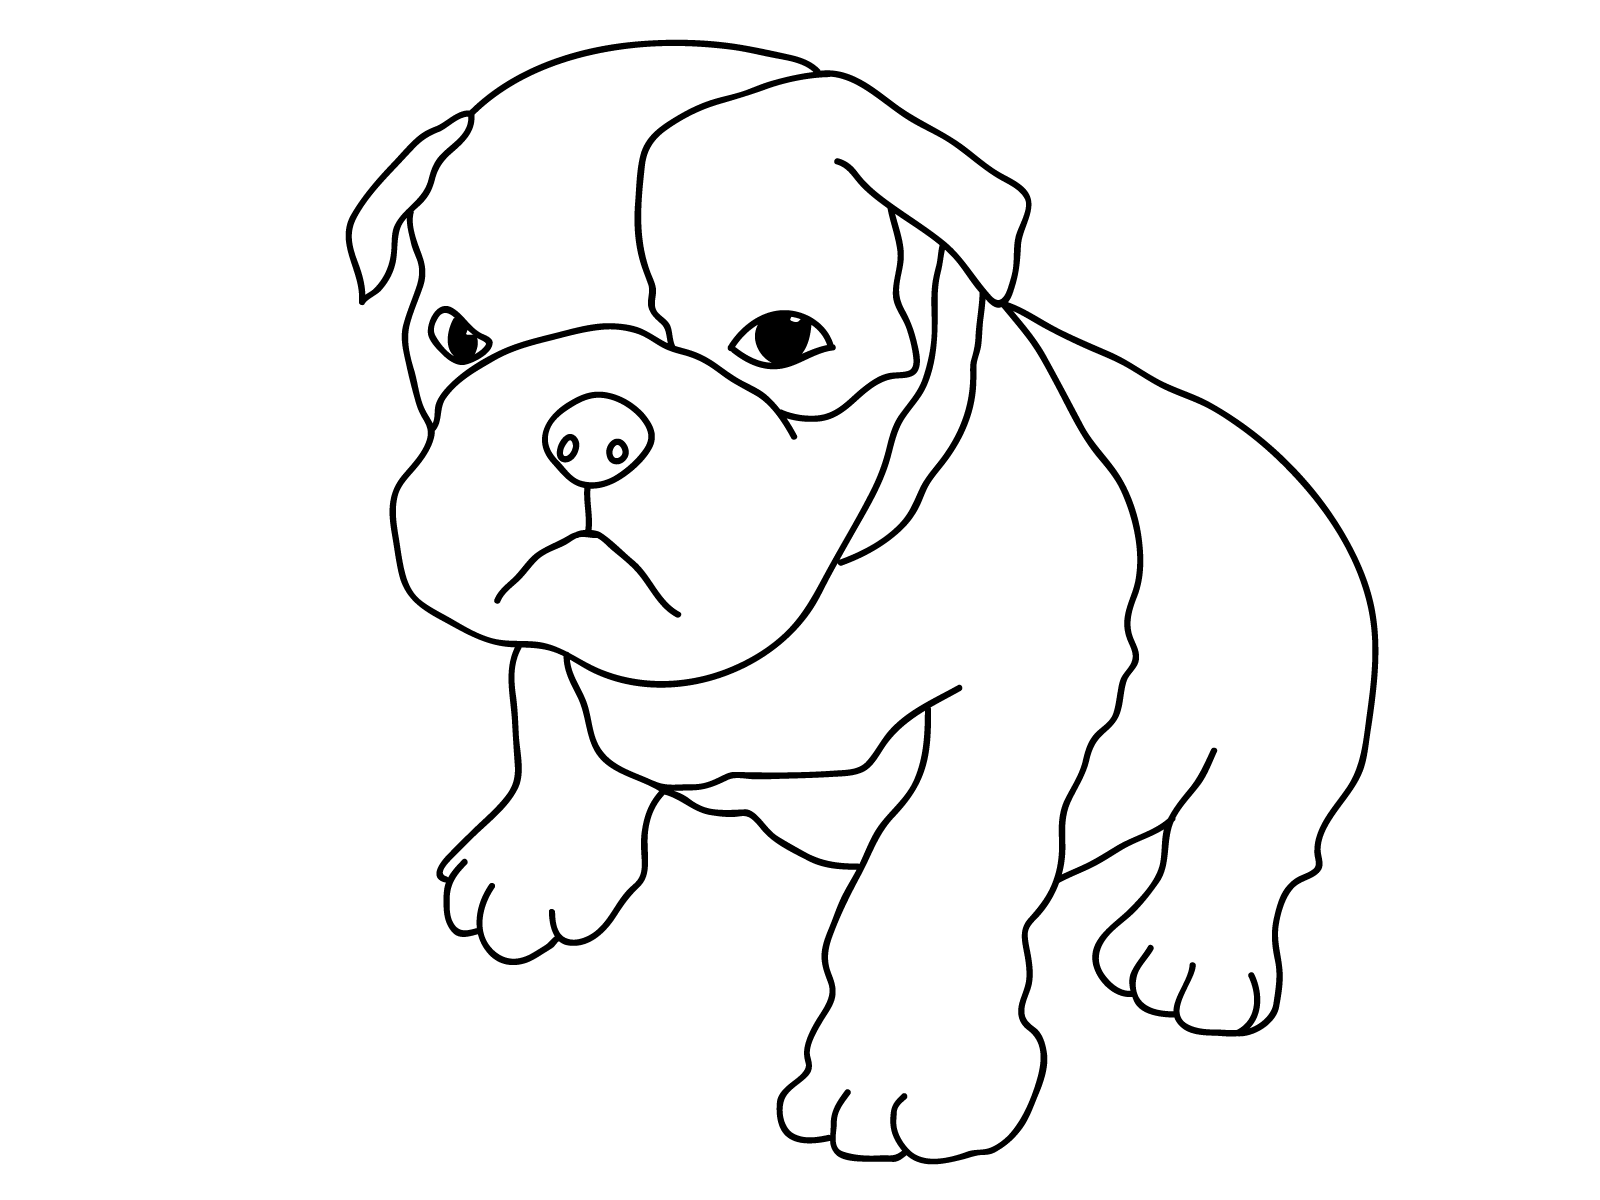 printable puppy pictures puppy coloring pages best coloring pages for kids pictures puppy printable